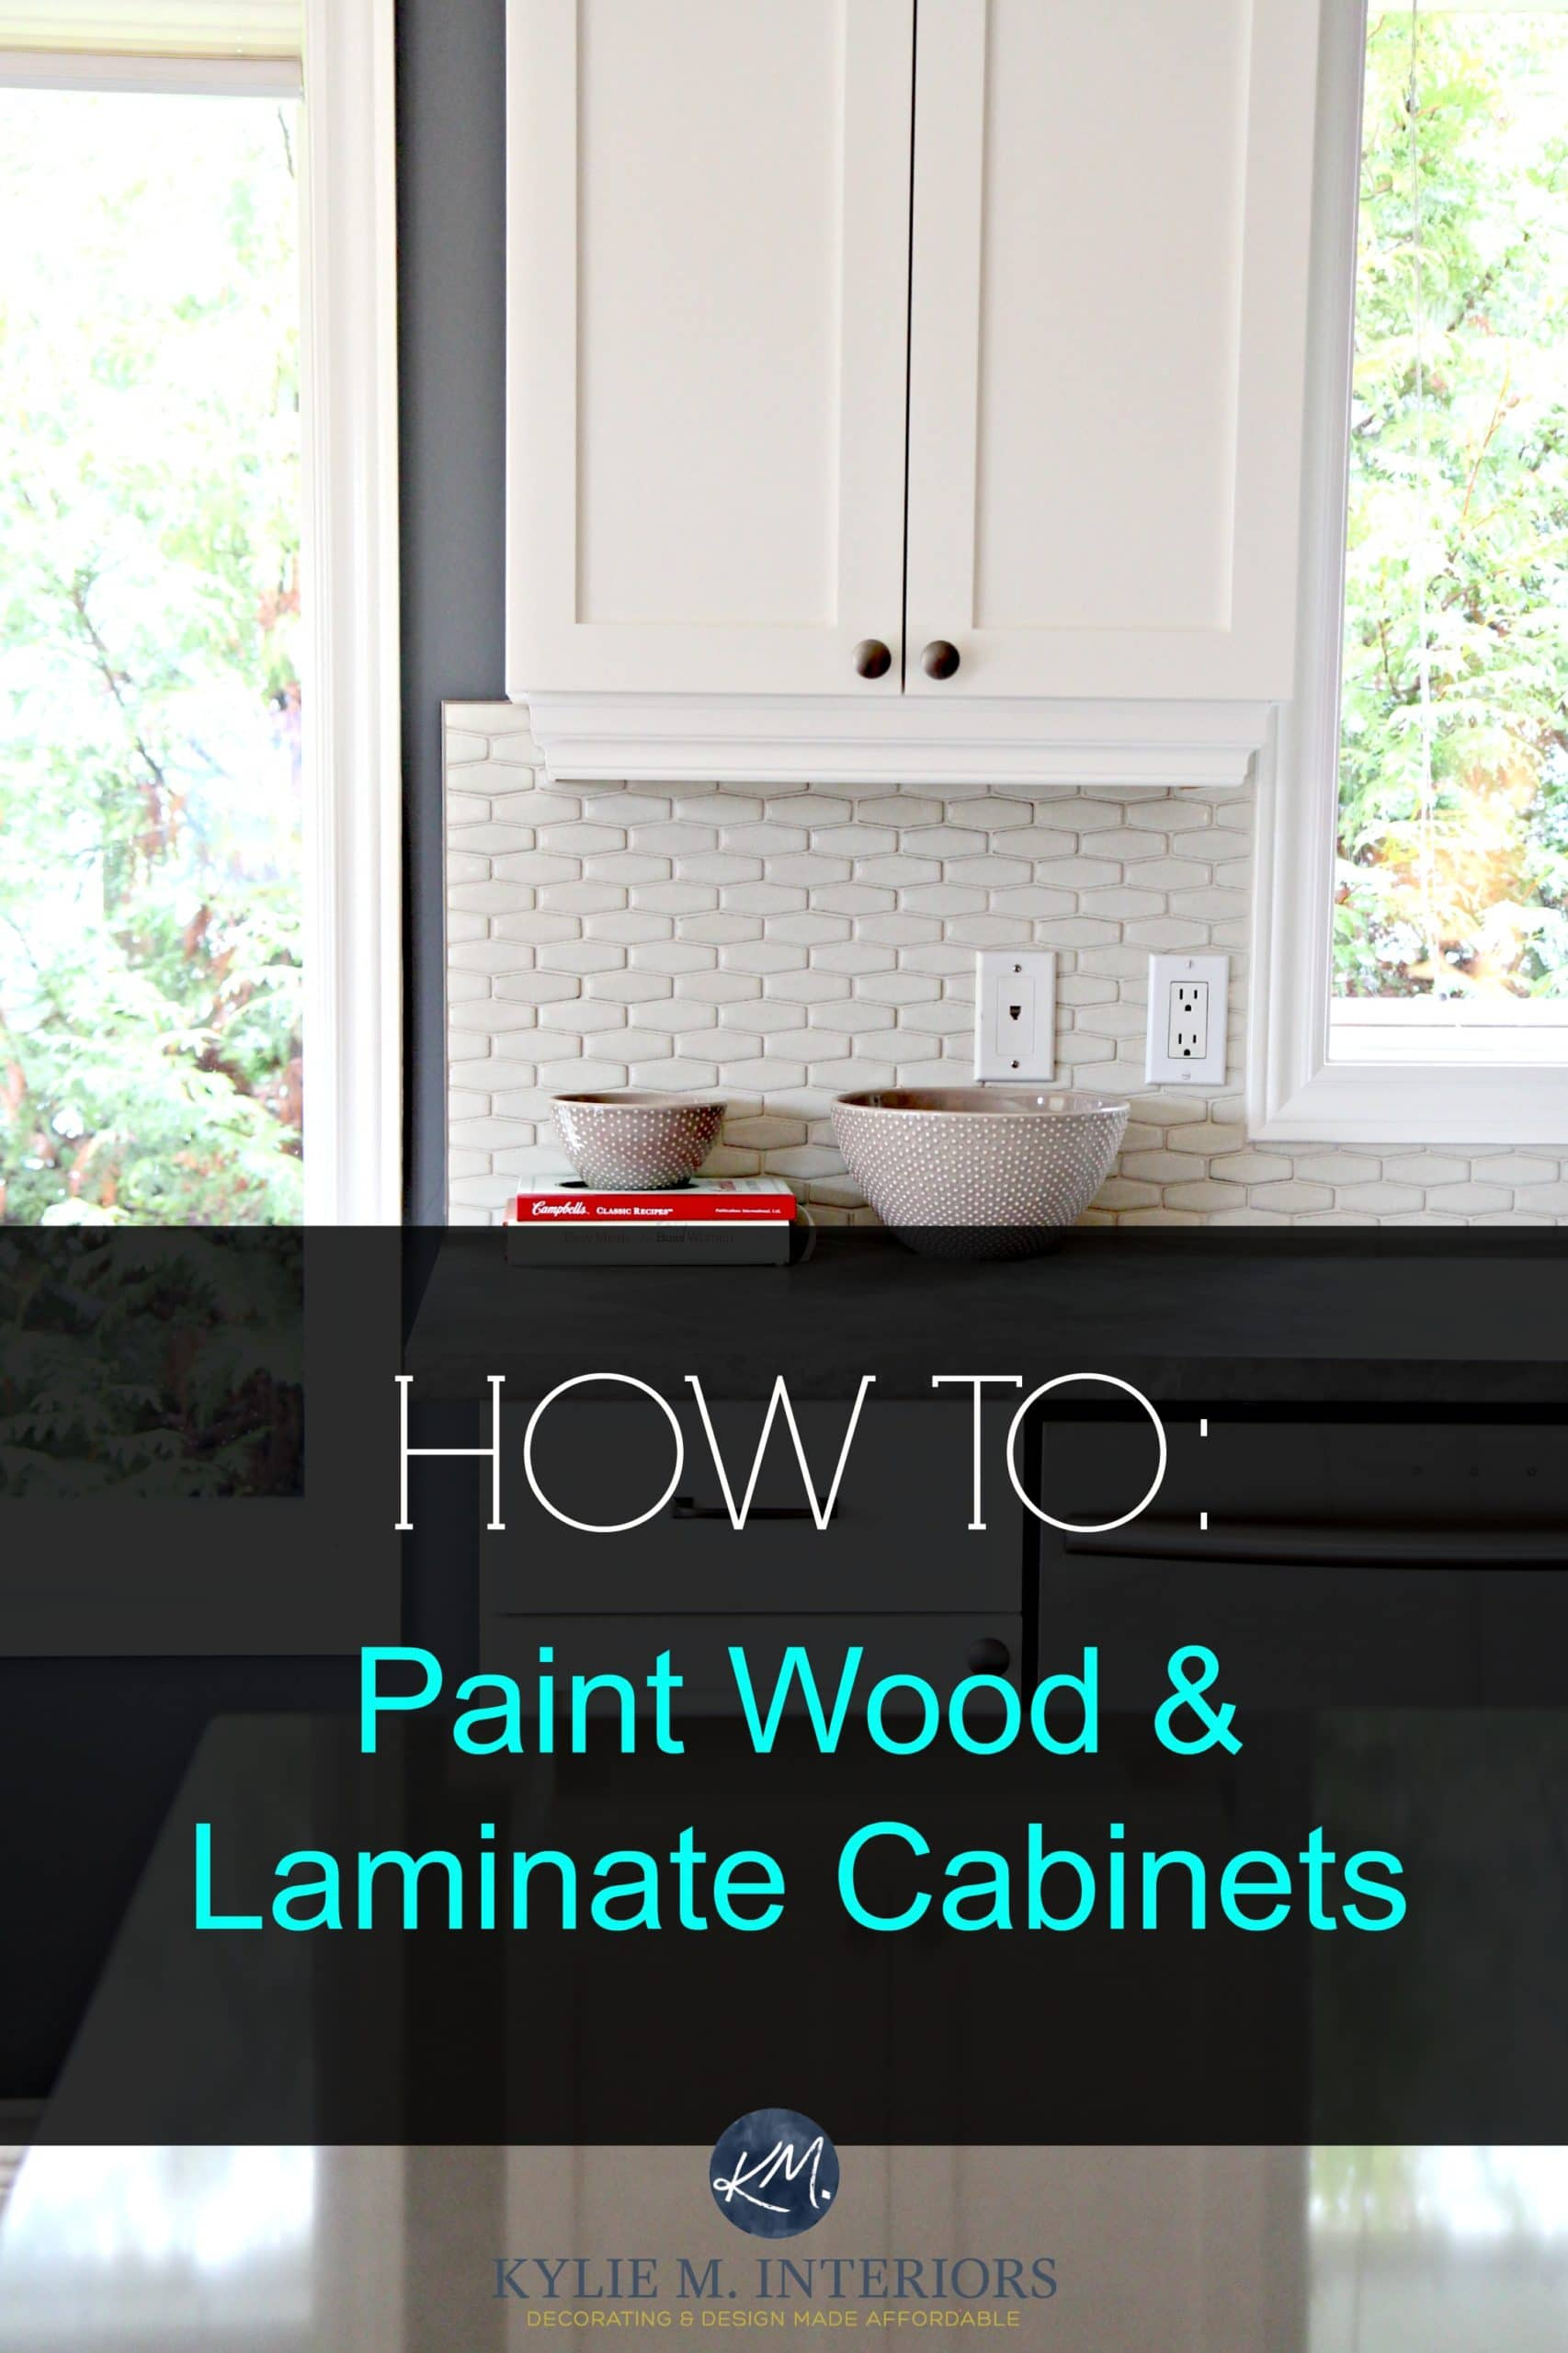 How To Update Laminate Kitchen Cabinets Tips And Ideas For Painting Wood And Laminate Cabinets And